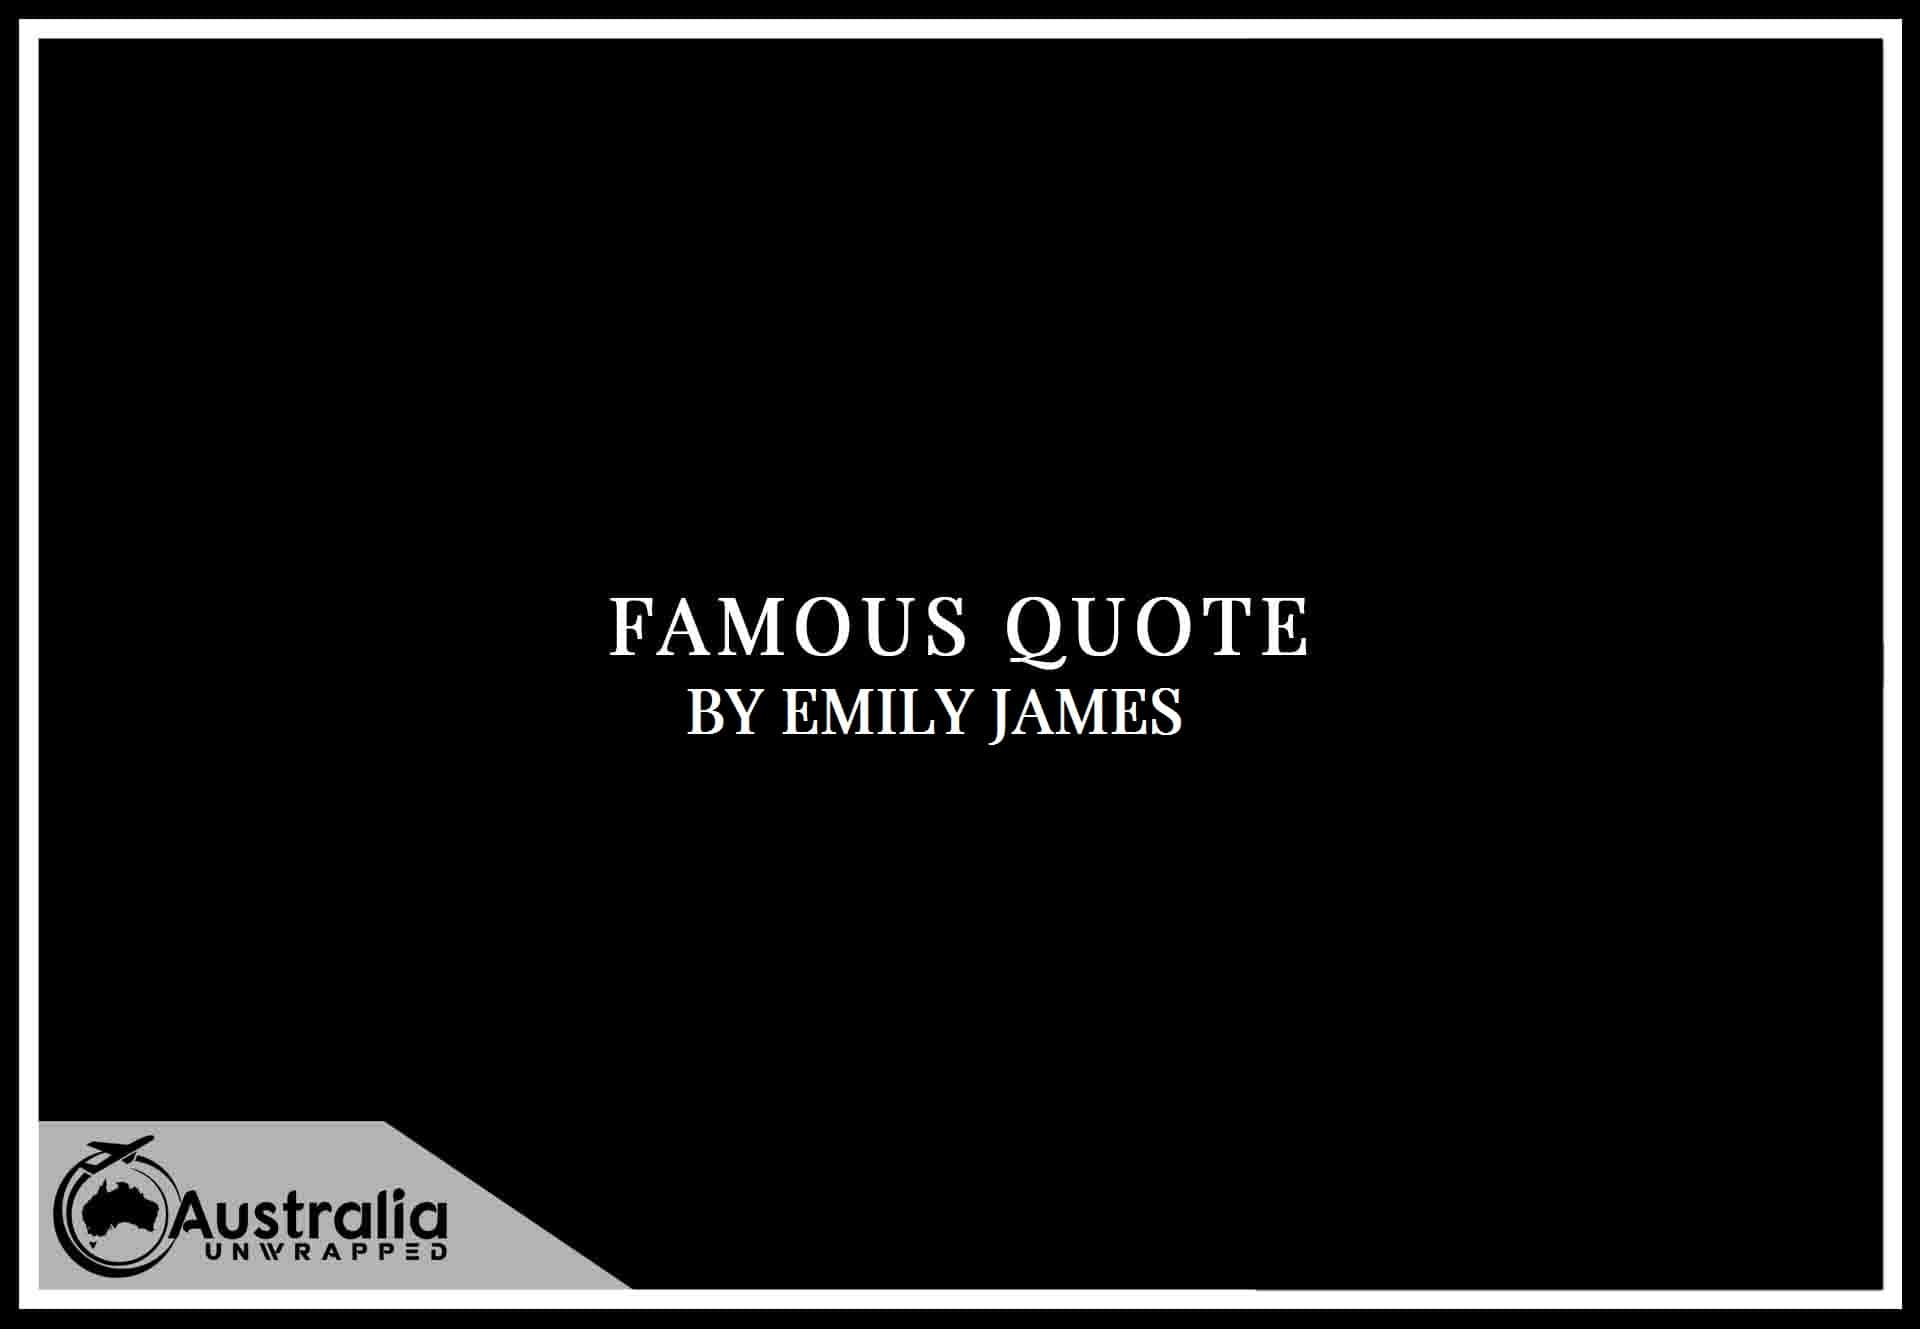 Emily James's Top 1 Popular and Famous Quotes